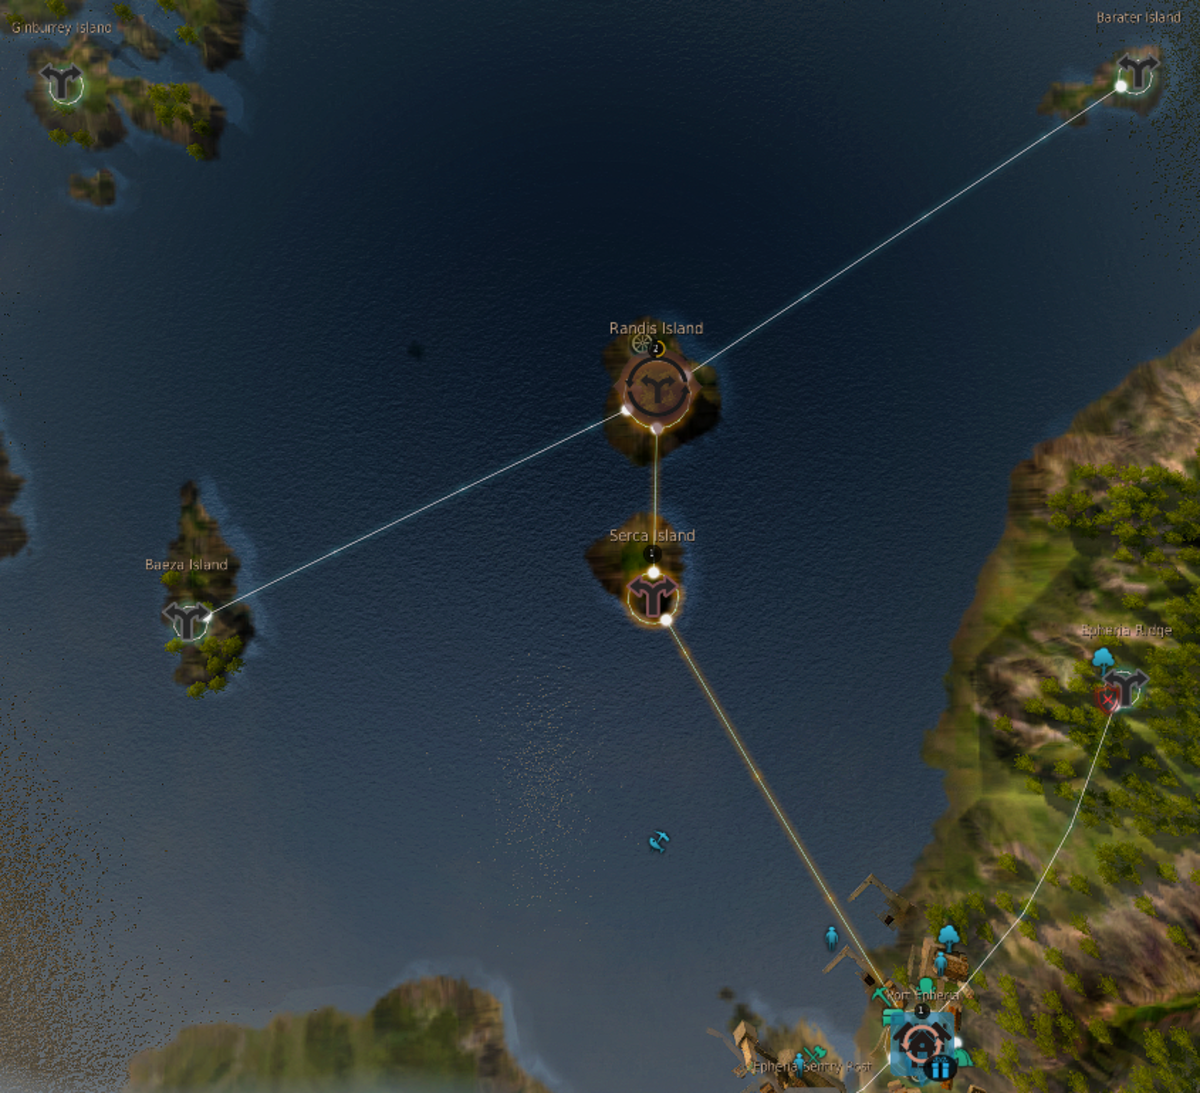 The islands that are connected with a line all have fishing nodes where your workers can collect dried fish.